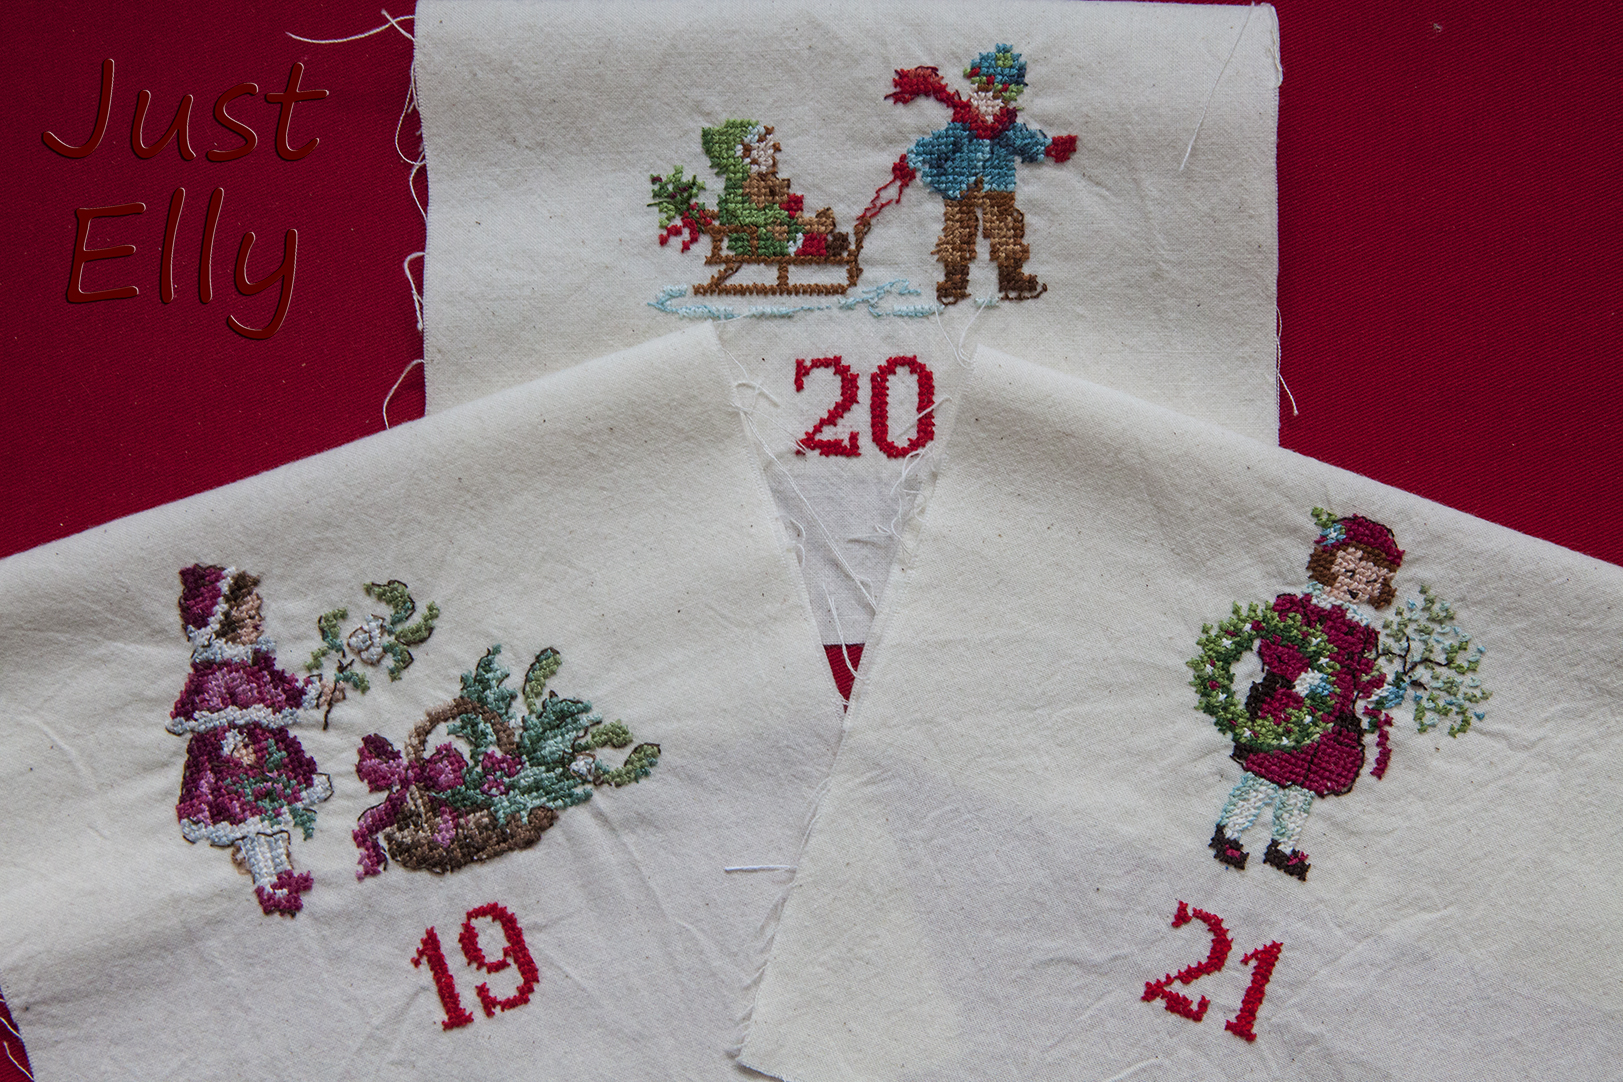 Cross stitching Dec 19-21